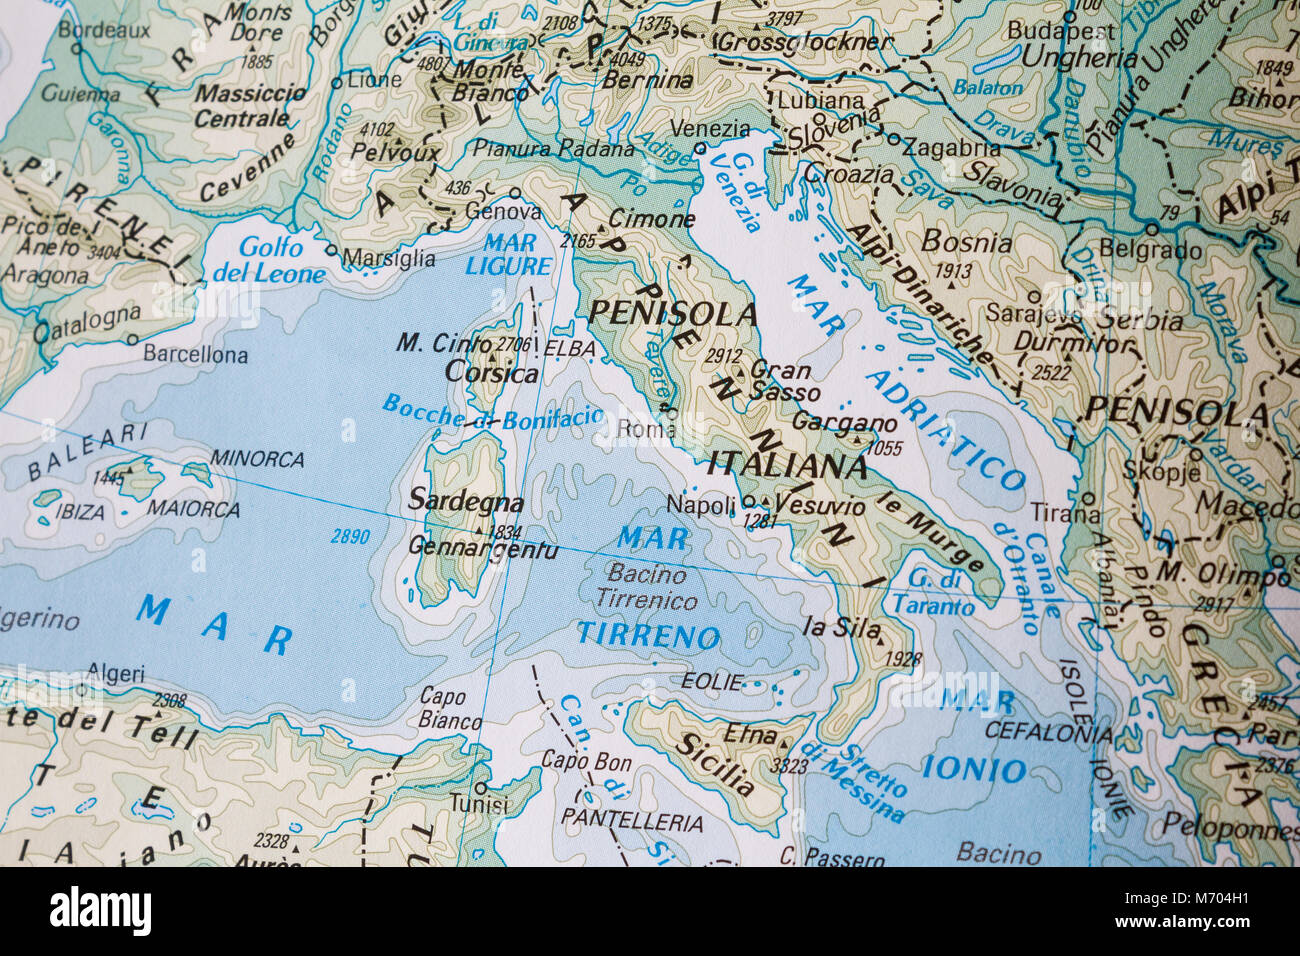 Physical map of the Southern Europe Stock Photo: 176409885 ...